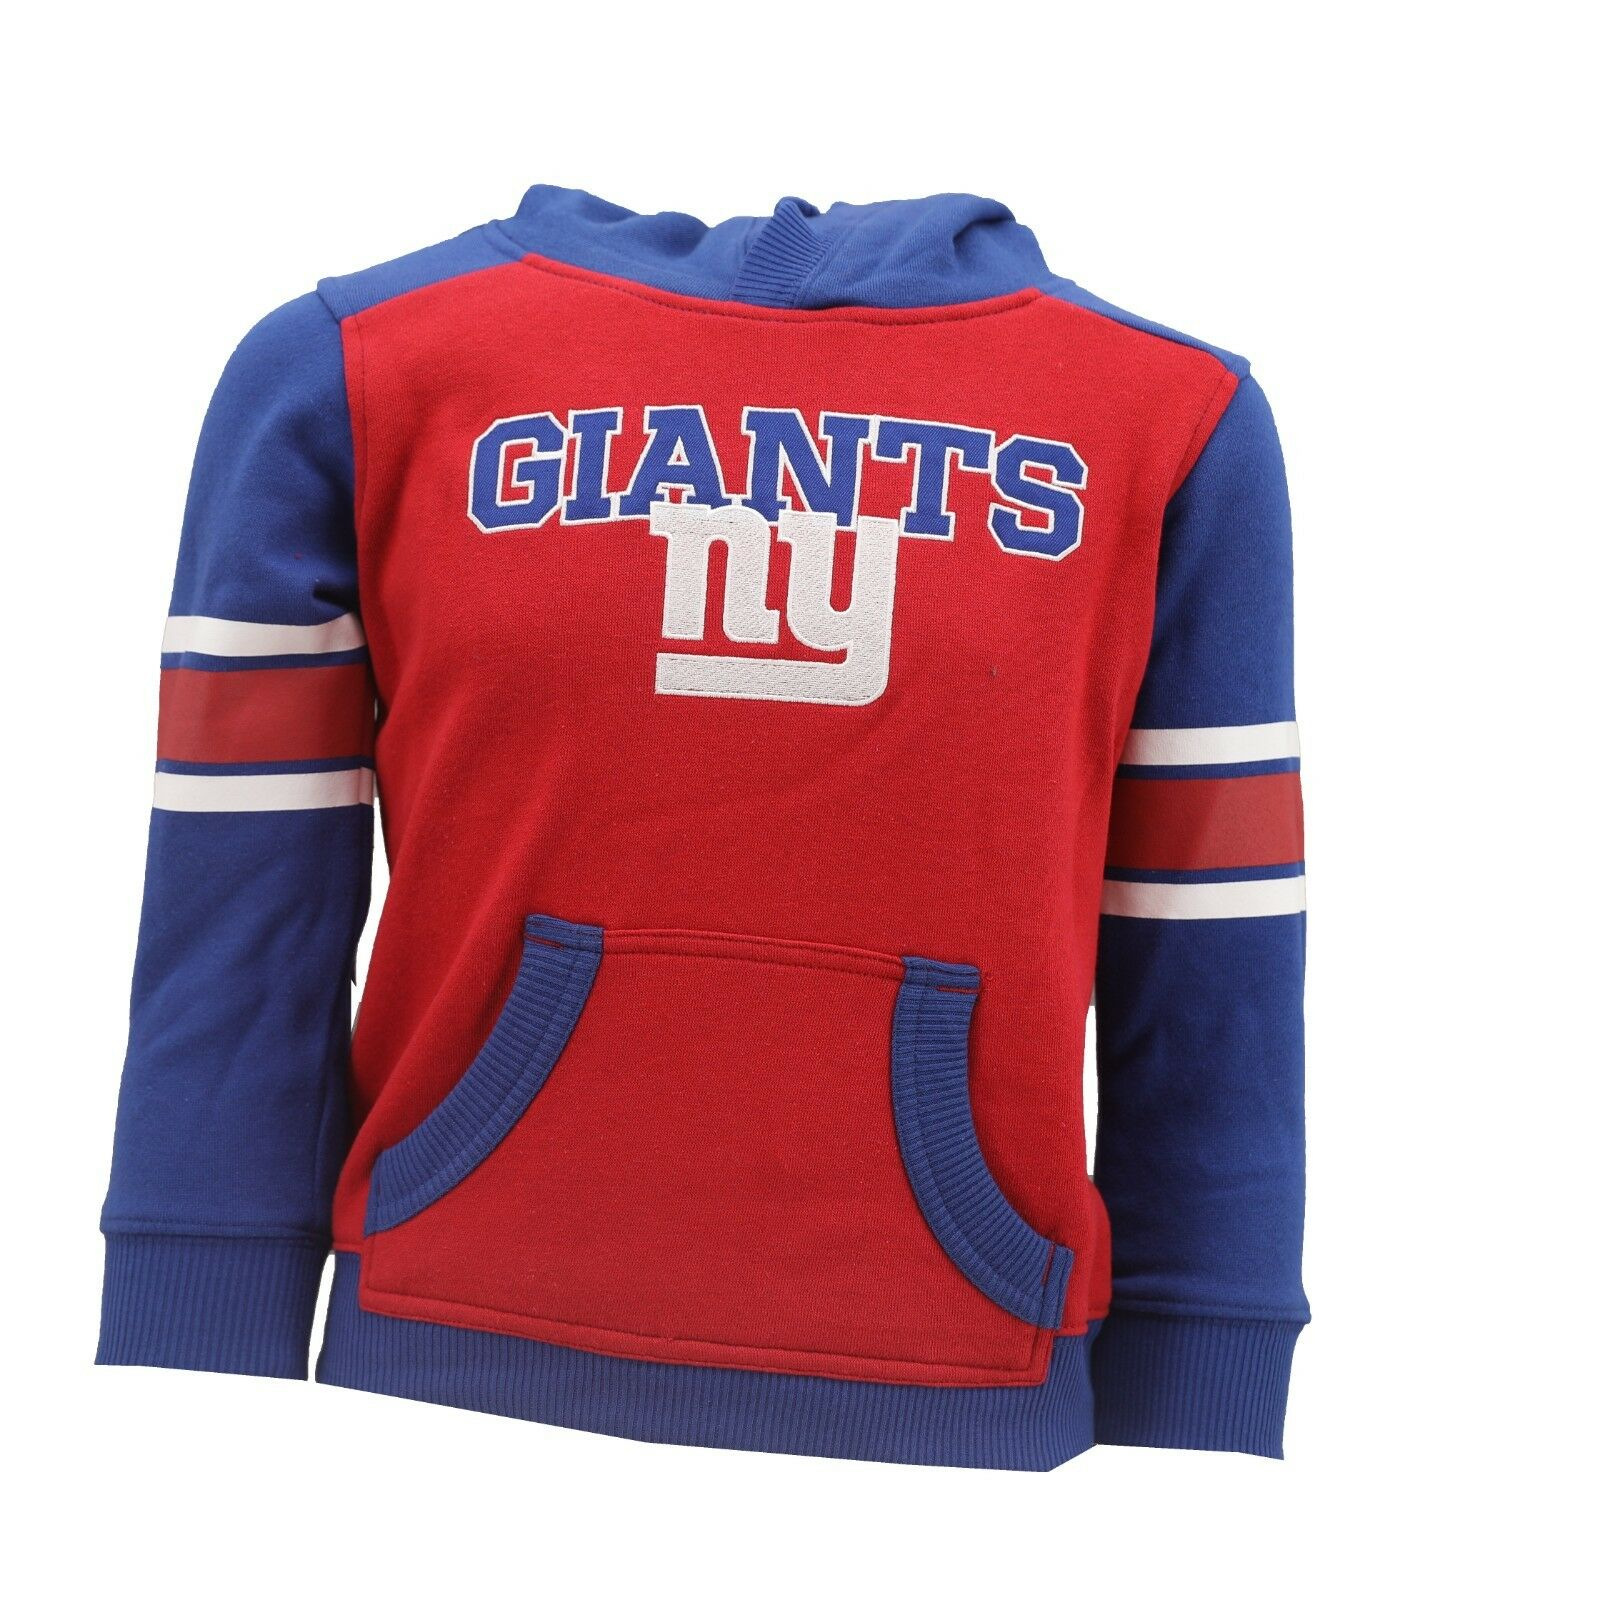 73b2540b1 New York Giants Official NFL Apparel Youth Kids Size Hooded Sweatshirt New  Tags